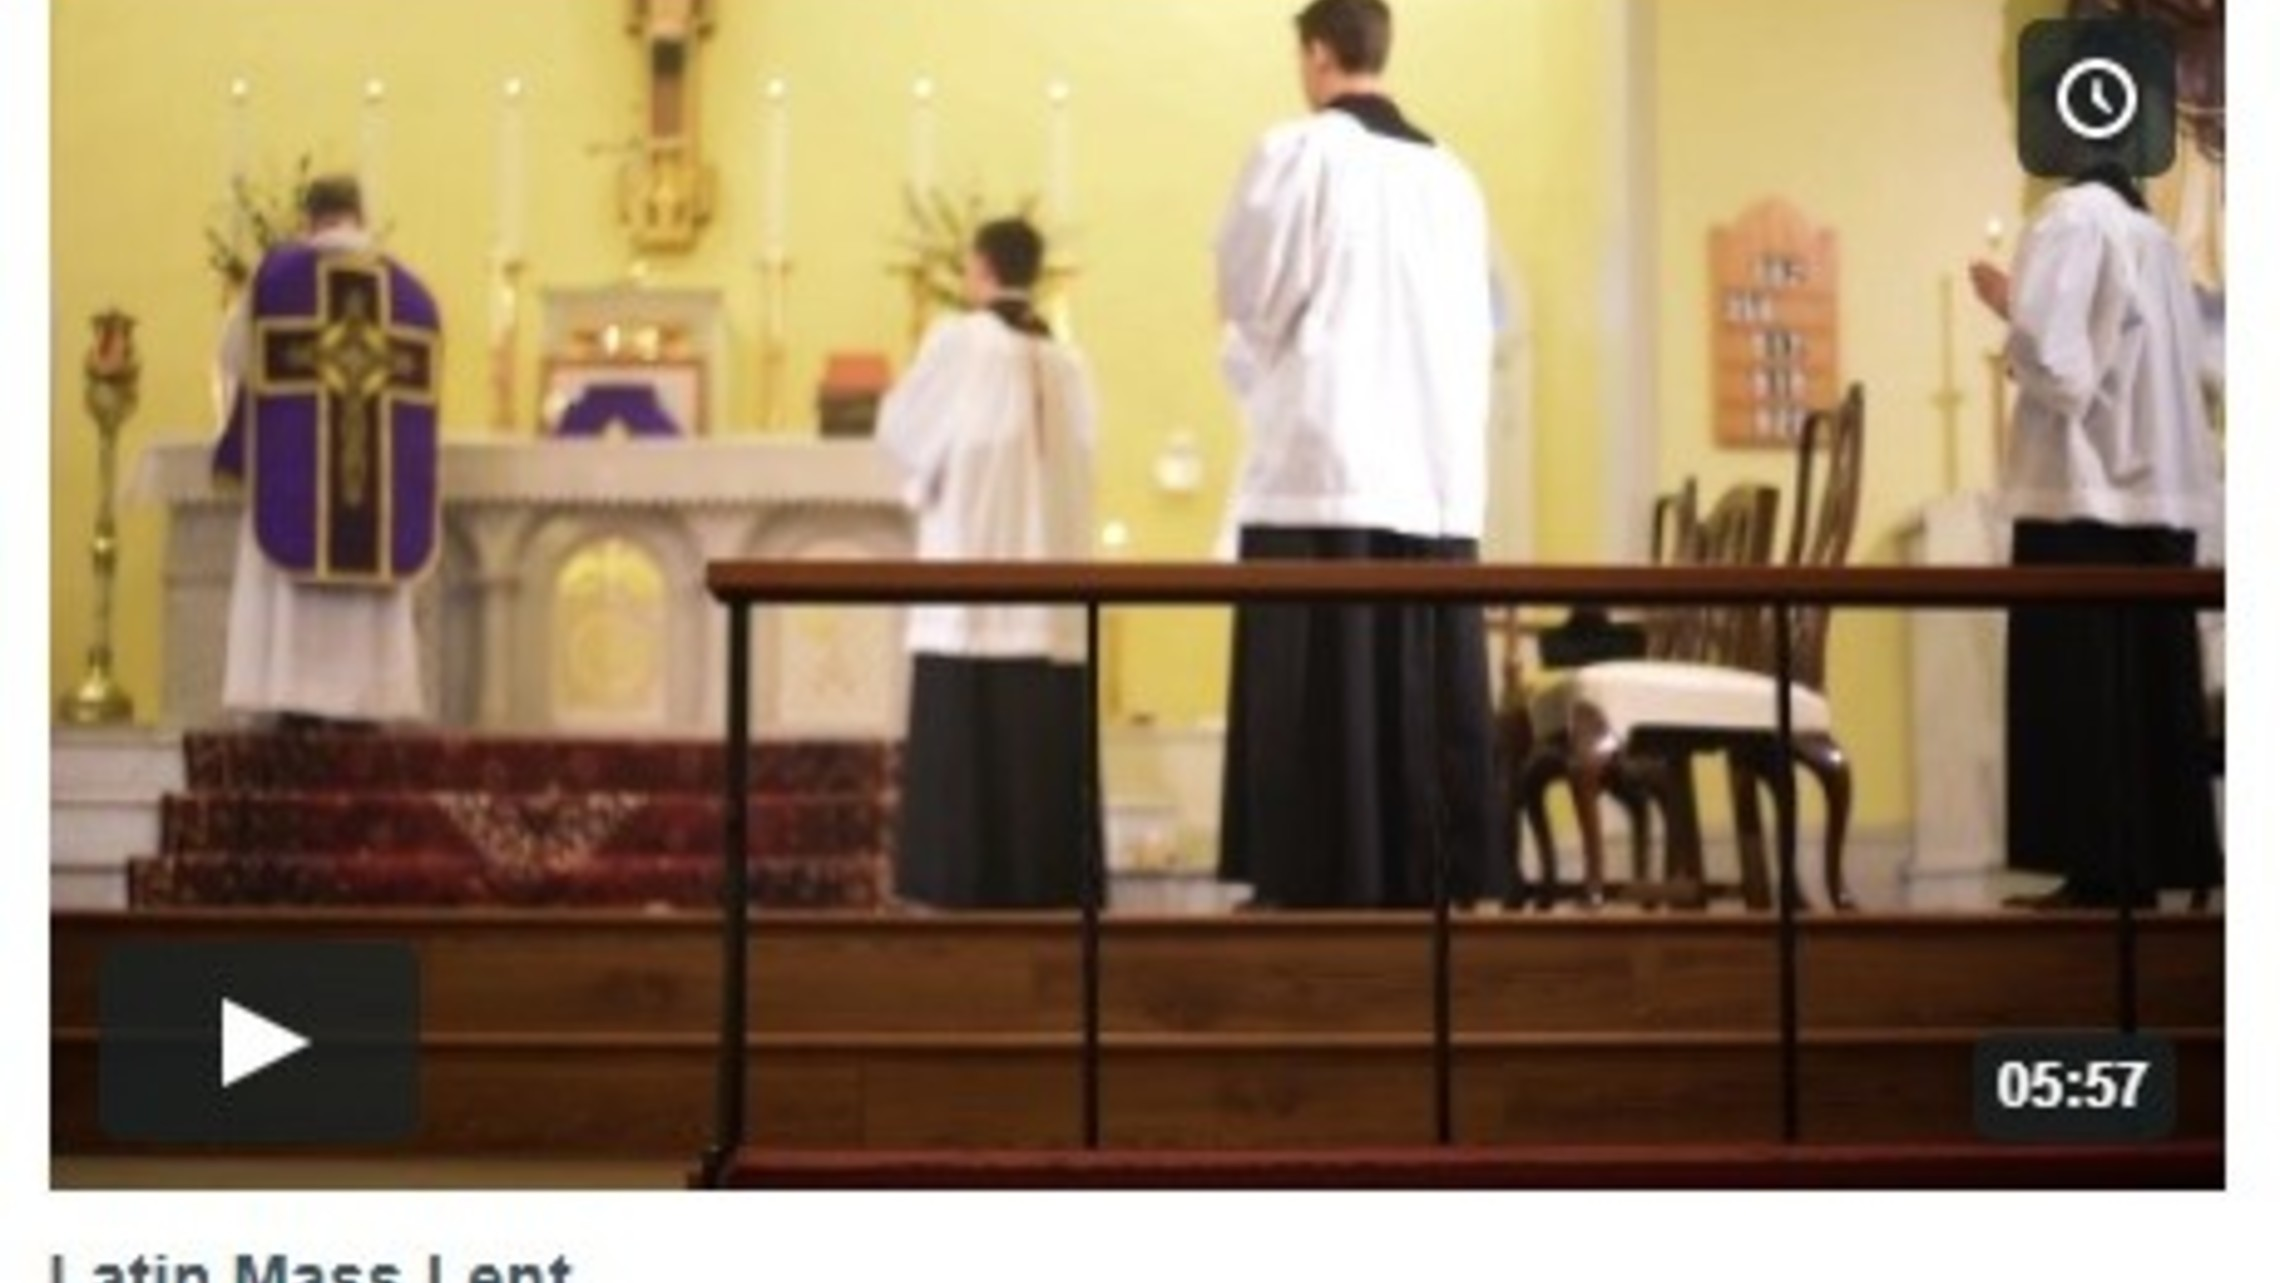 Latin Mass Lent Video